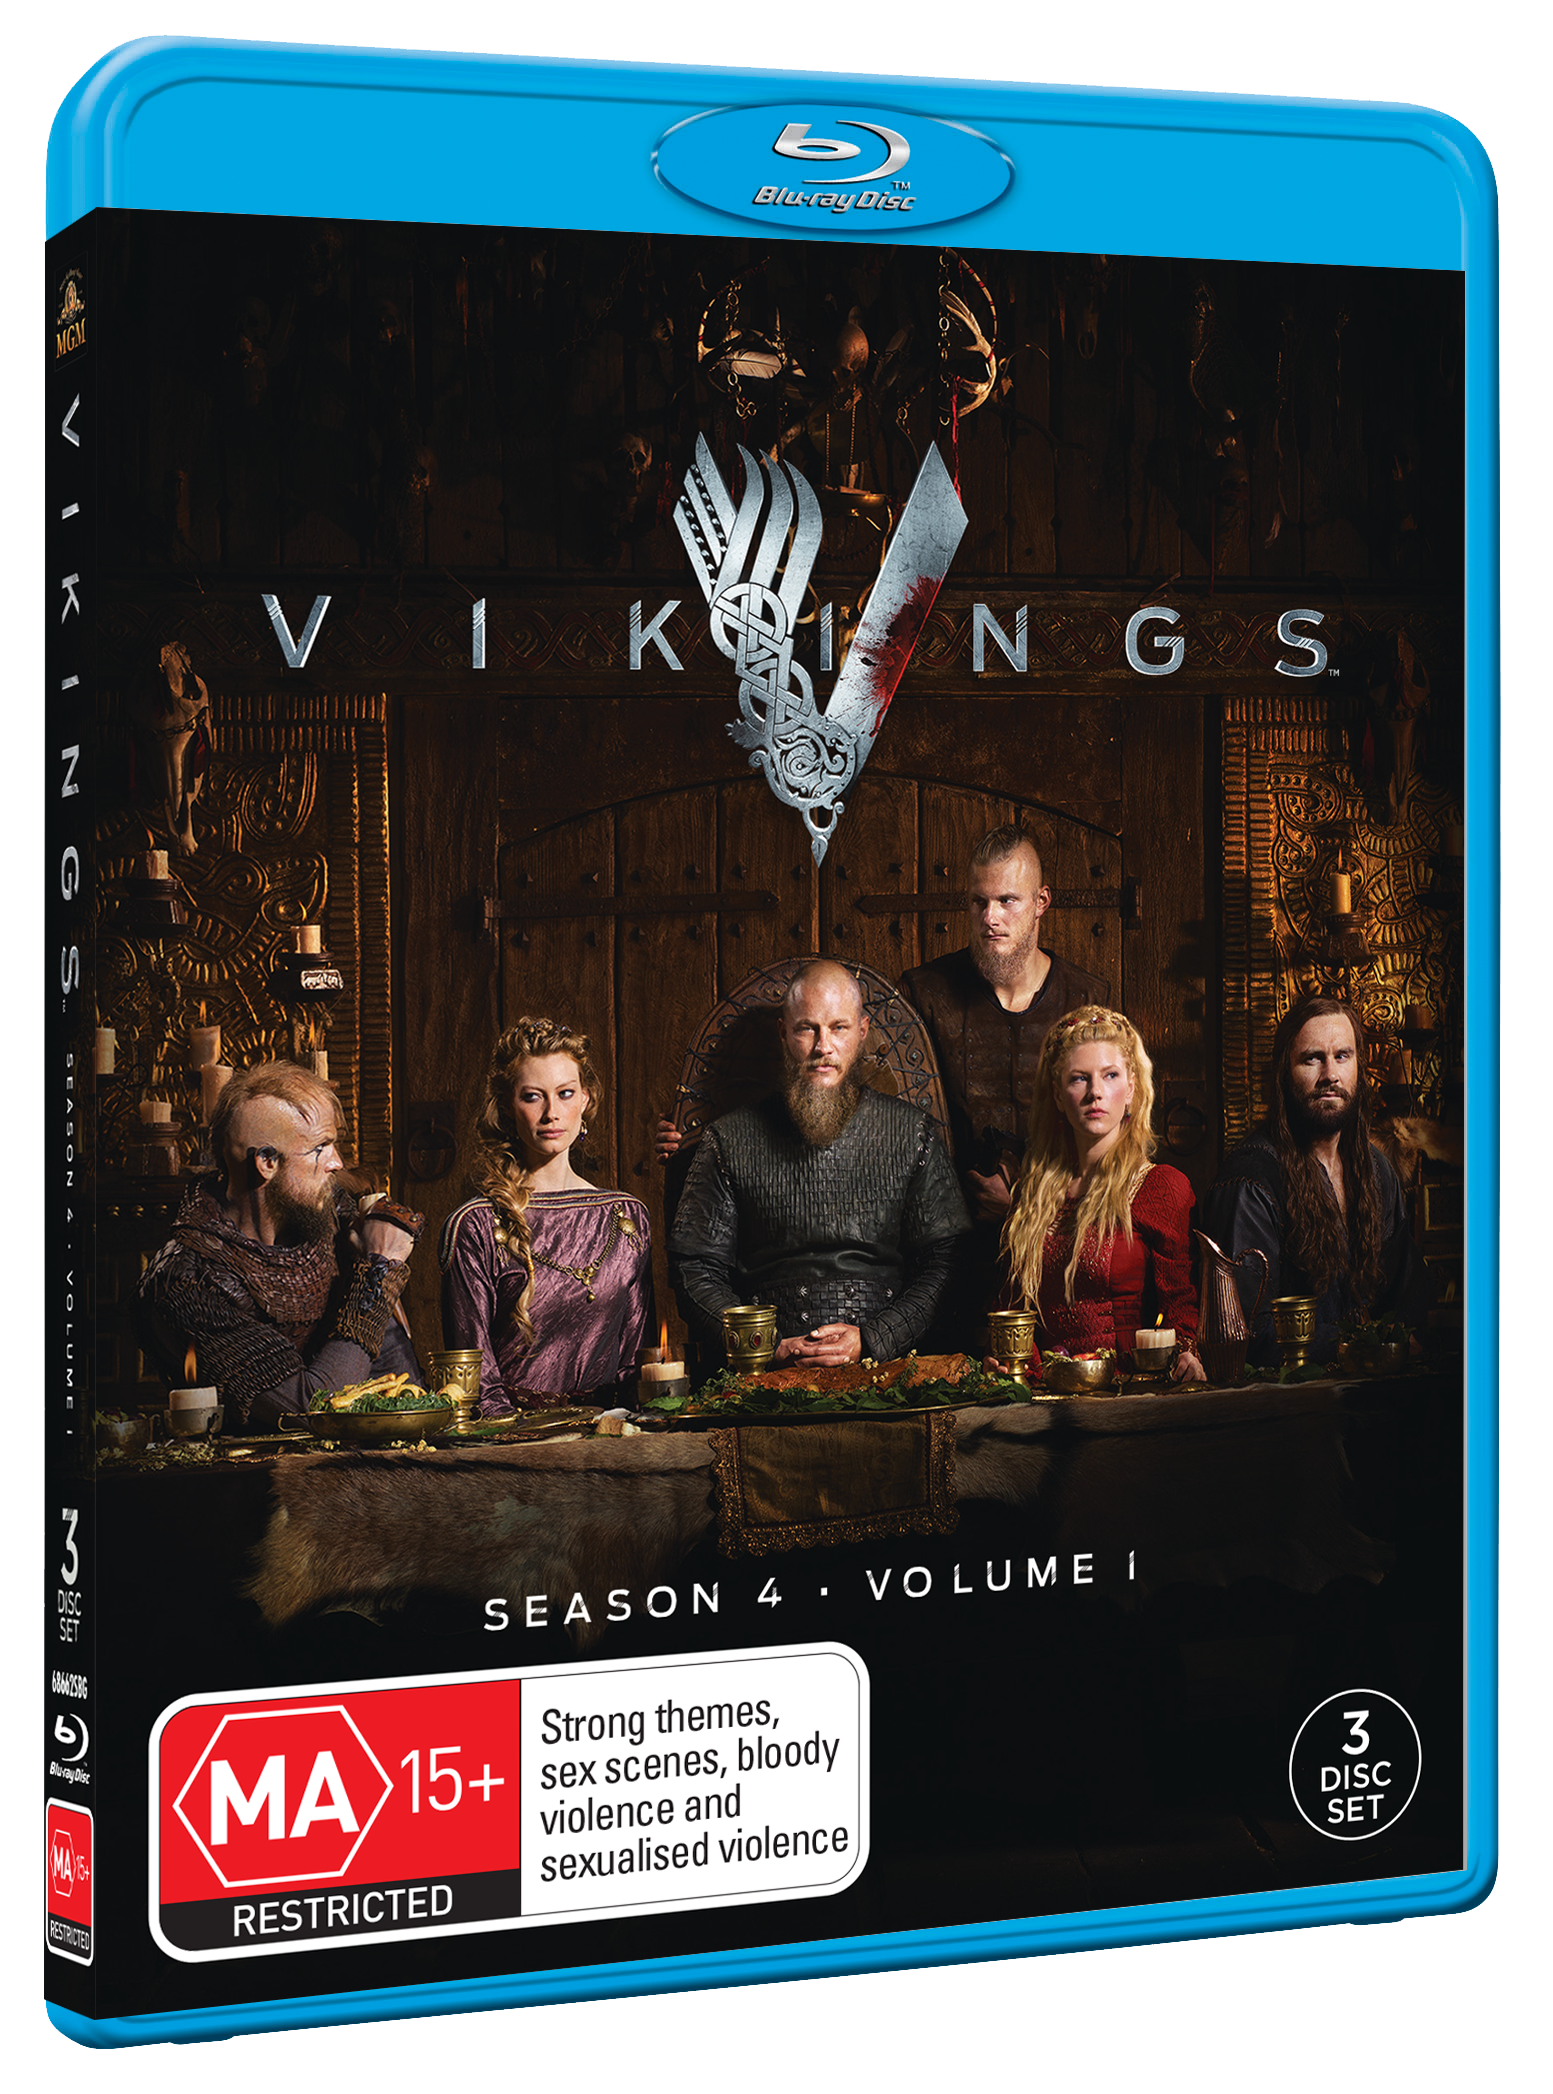 Vikings S4 Part 1 BD